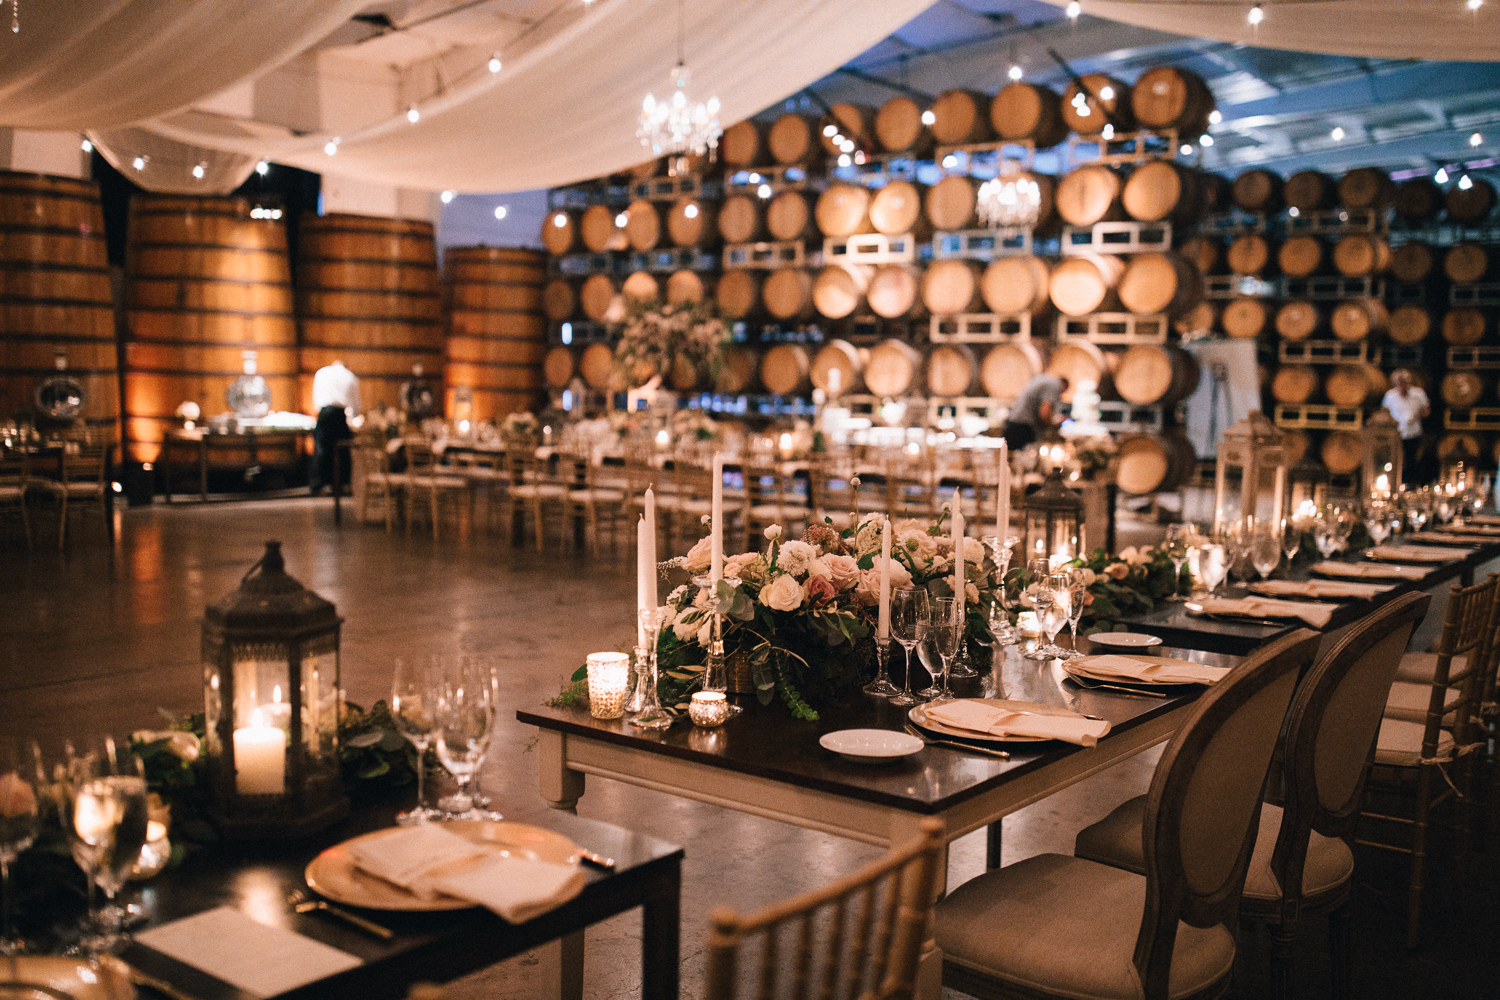 2018_08_ 112018.08.11 Cline Vinyard Wedding Blog Photos Edited For Web 0068.jpg